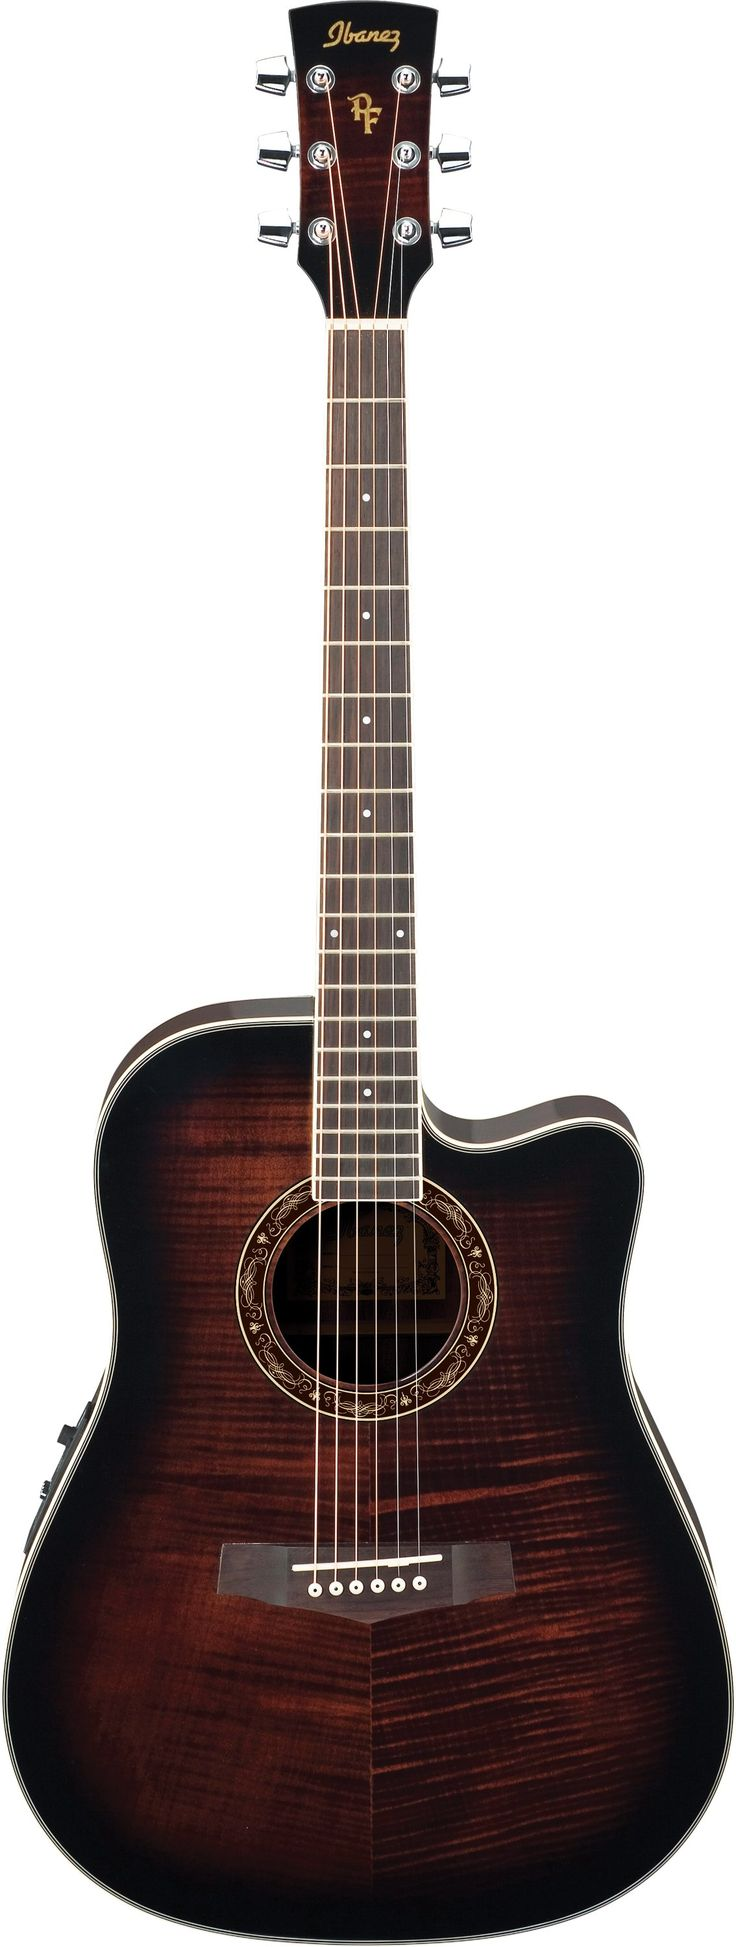 Ibanez PF28ECE Acoustic  www.asmusicstore.com  814-946-8660  christmas gifts